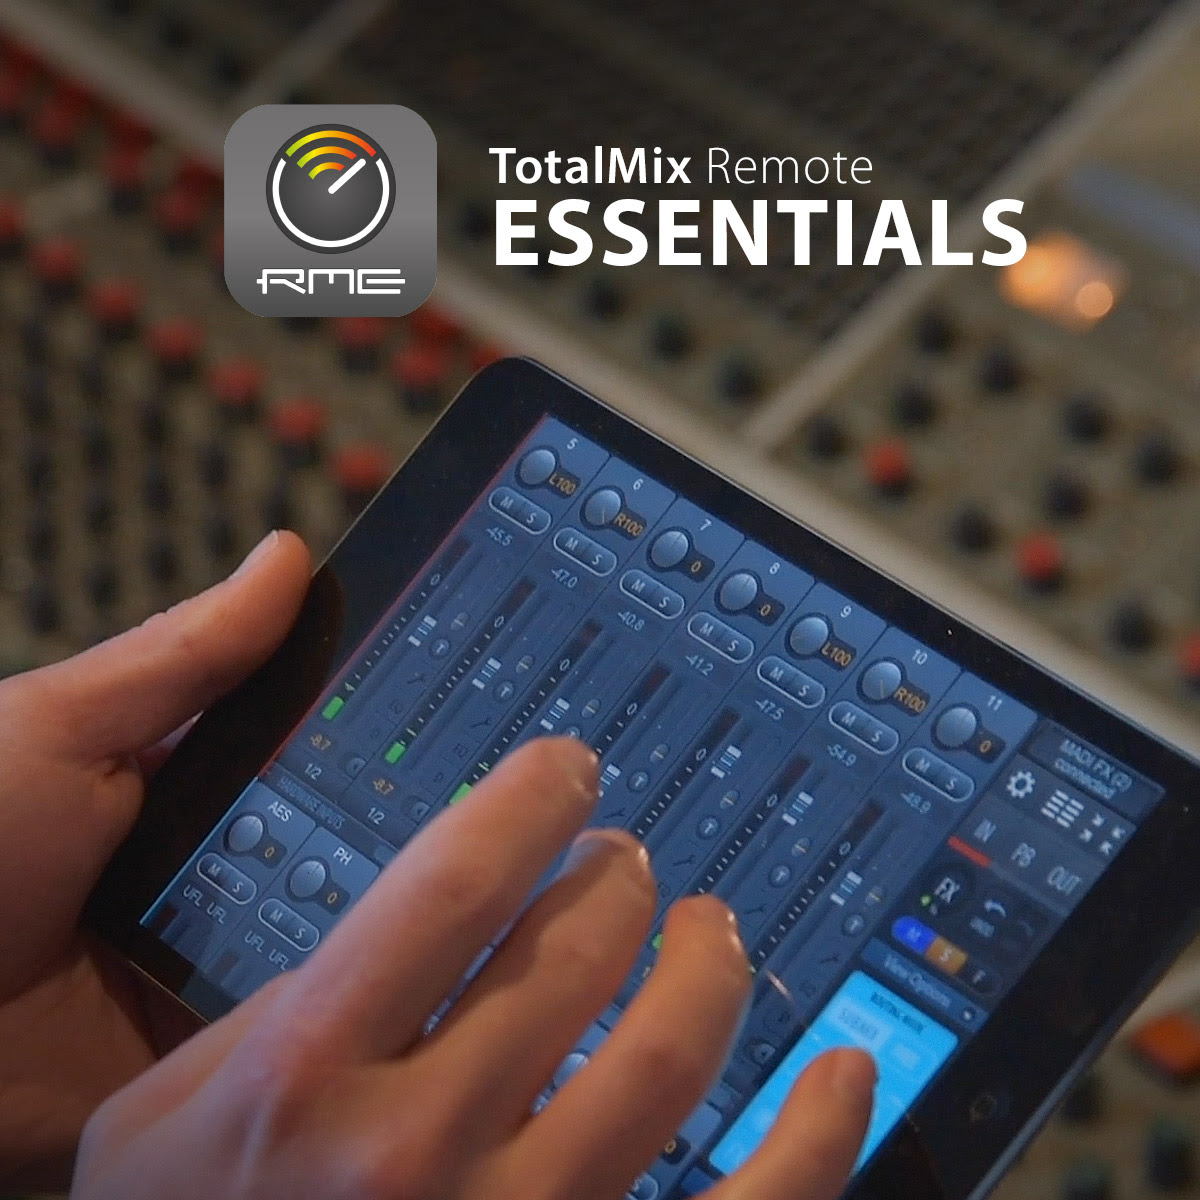 RME TotalMix Remote App Livestream